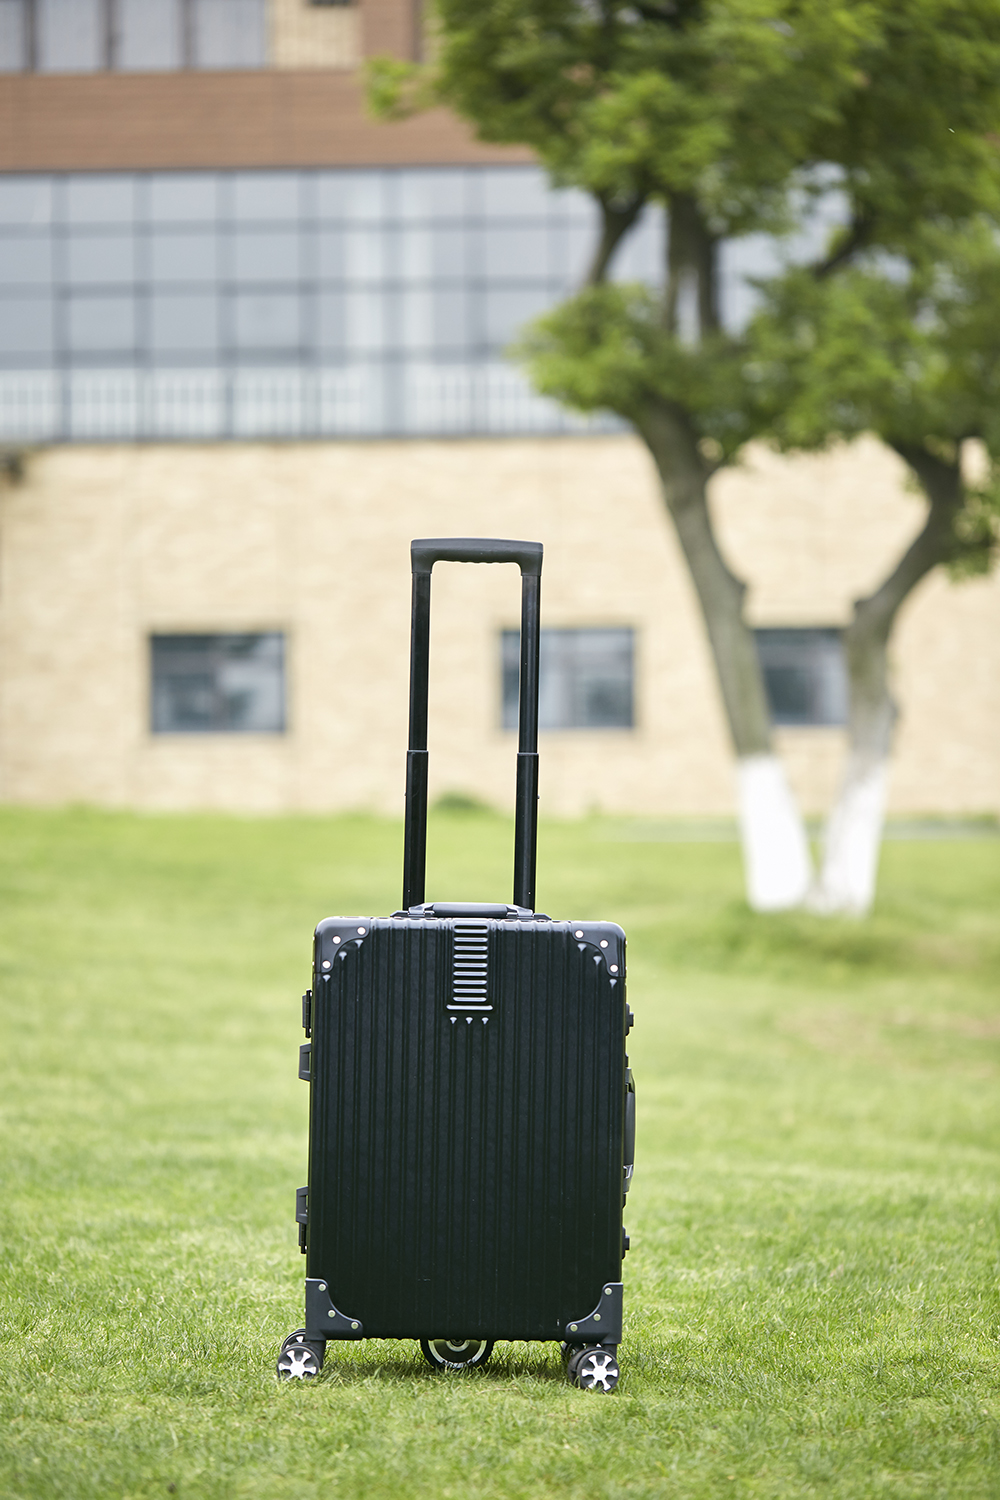 Airwheel SR5 electric traveling suitcase